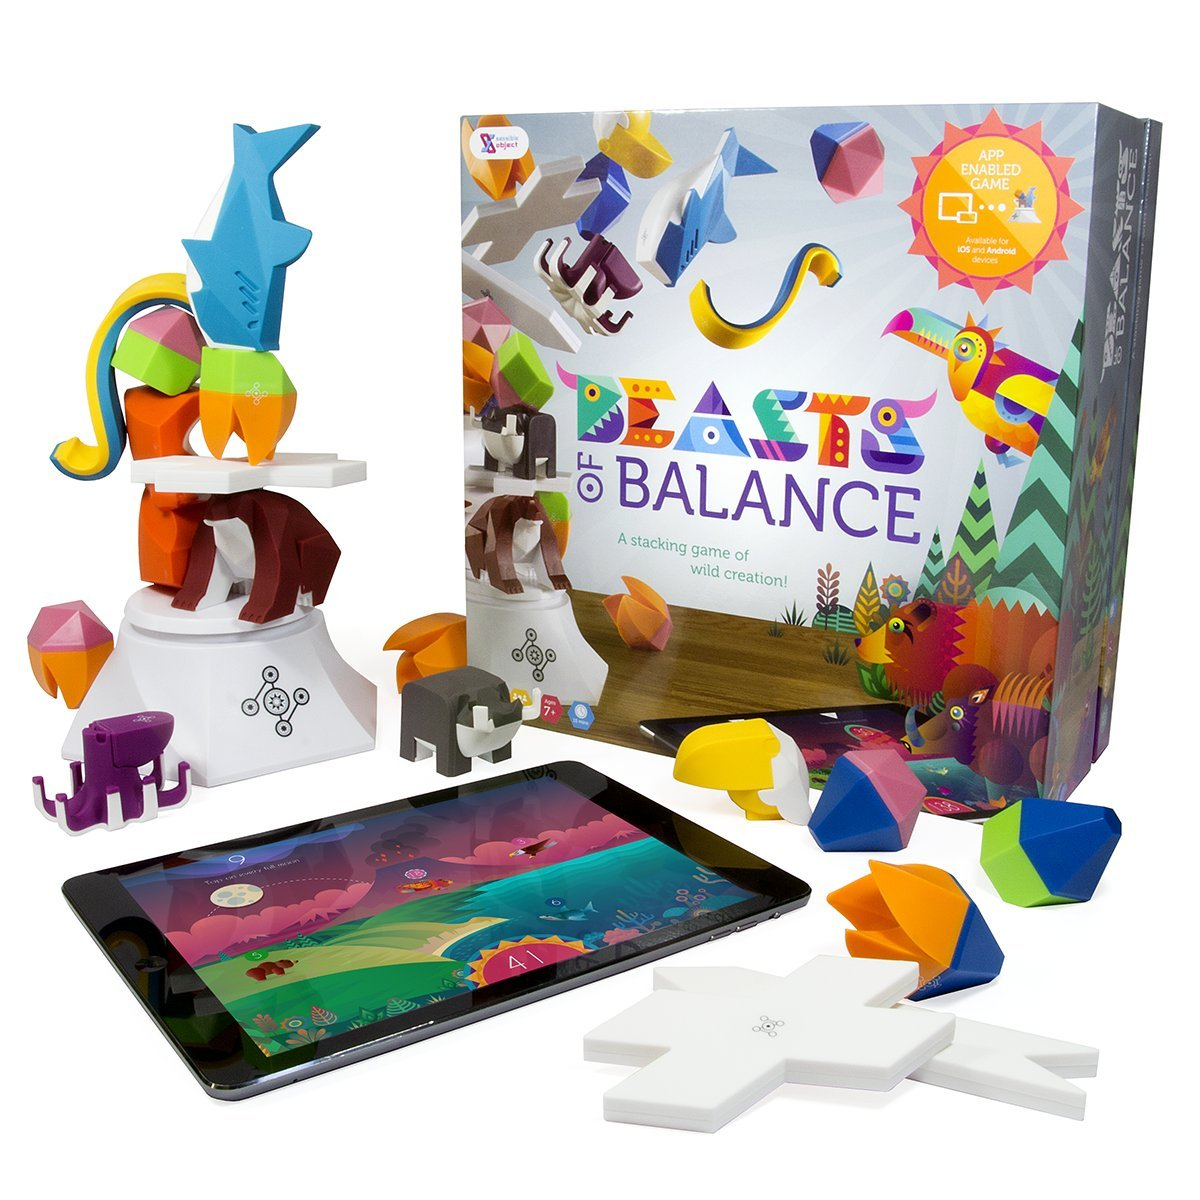 Beasts of Balance - A Digital Tabletop Hybrid Family Stacking Game For Ages 7+ (BOB-COR-WW-1/GEN) by Sensible Object